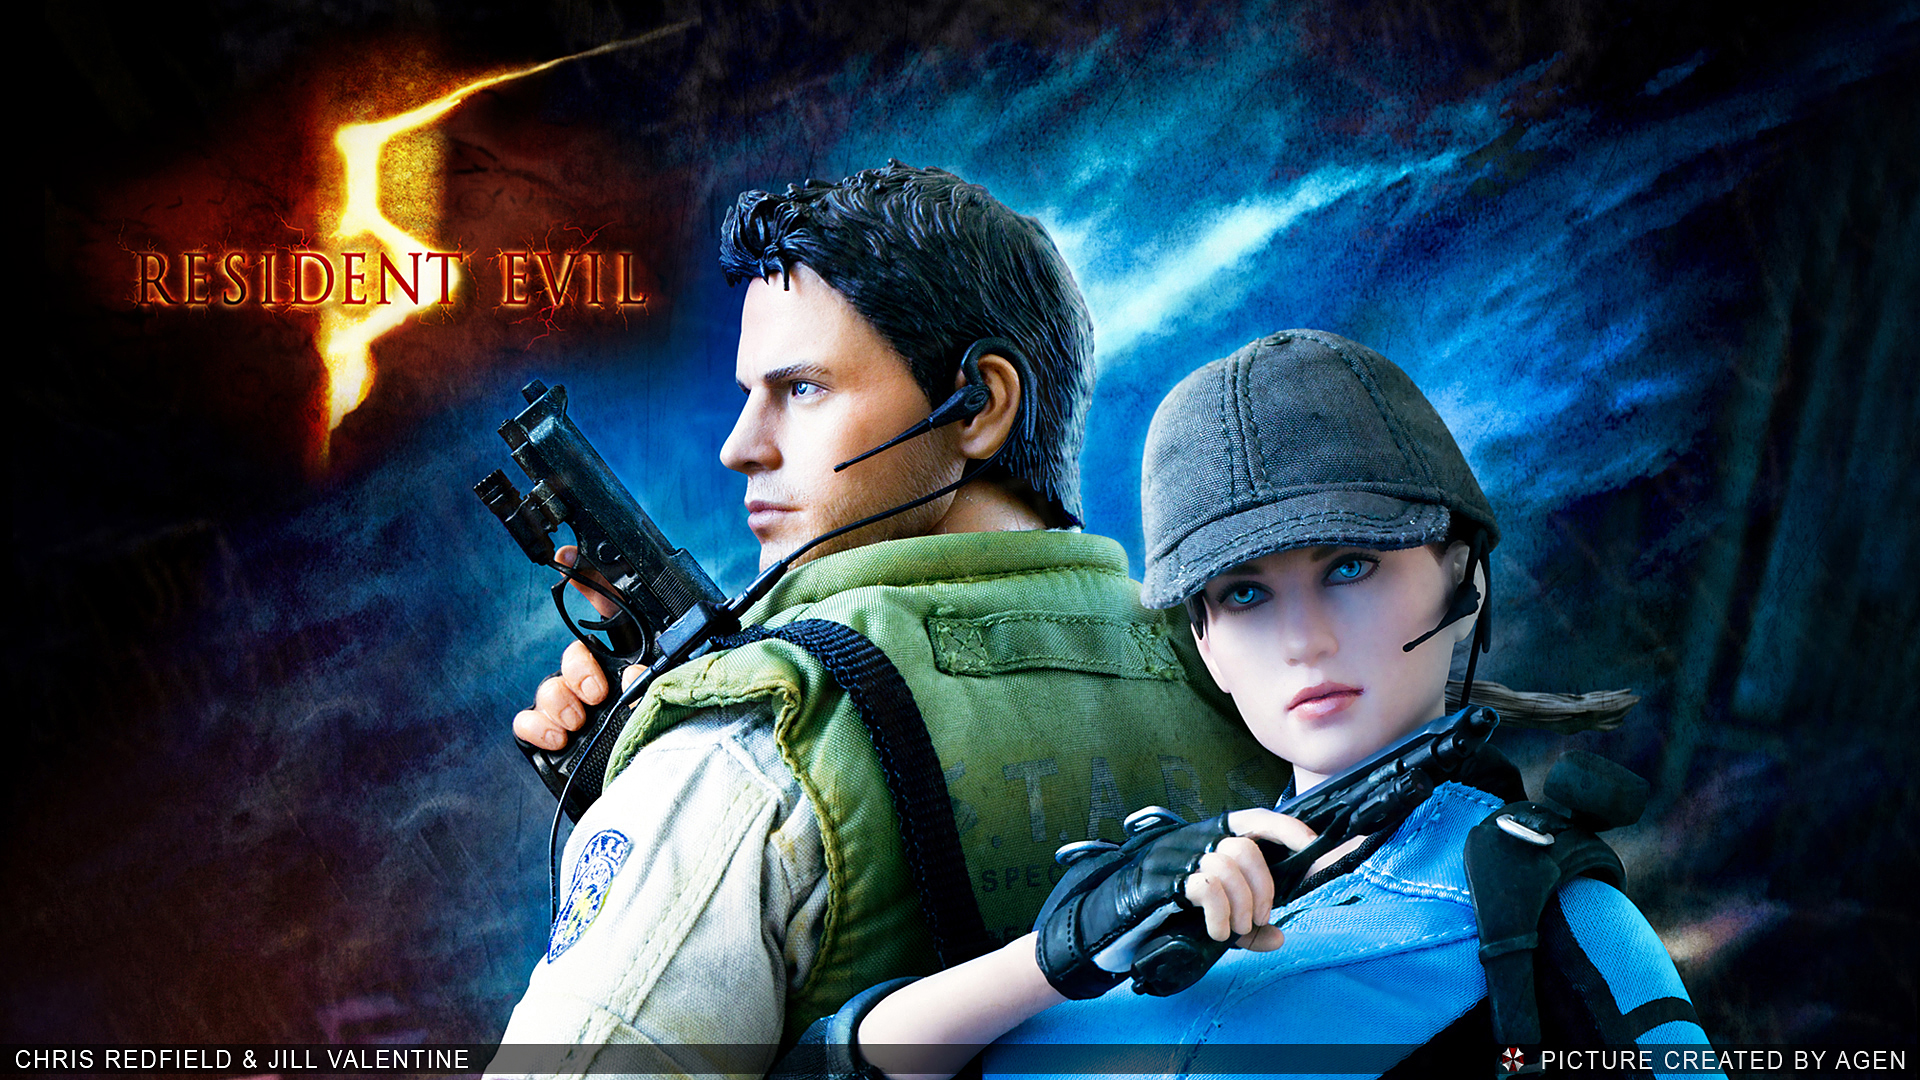 resident evil 5 chris redfield jill valentine  background HD Wallpaper